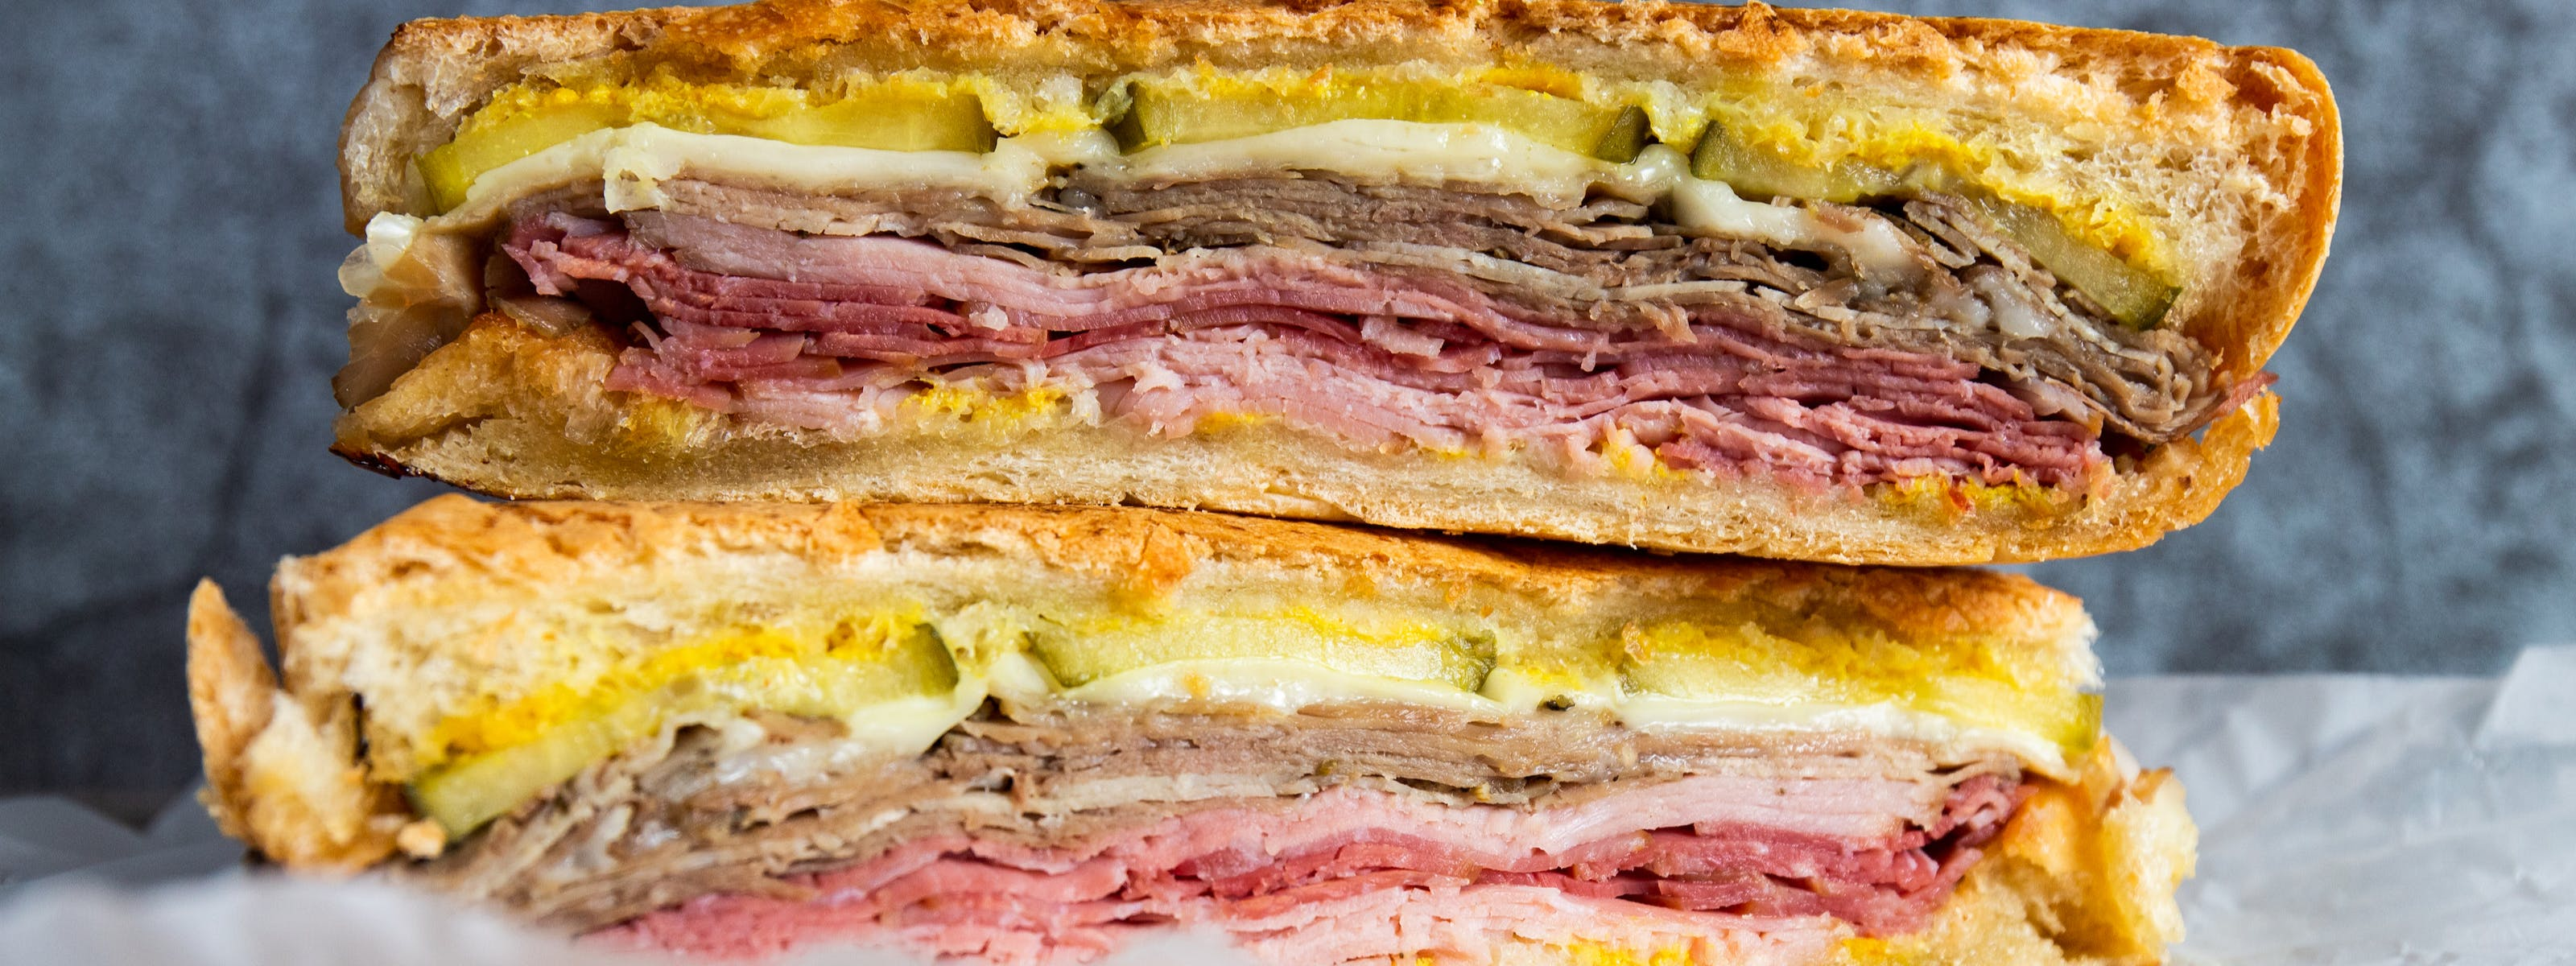 The Best Cuban Sandwiches In Miami - Miami - The Infatuation